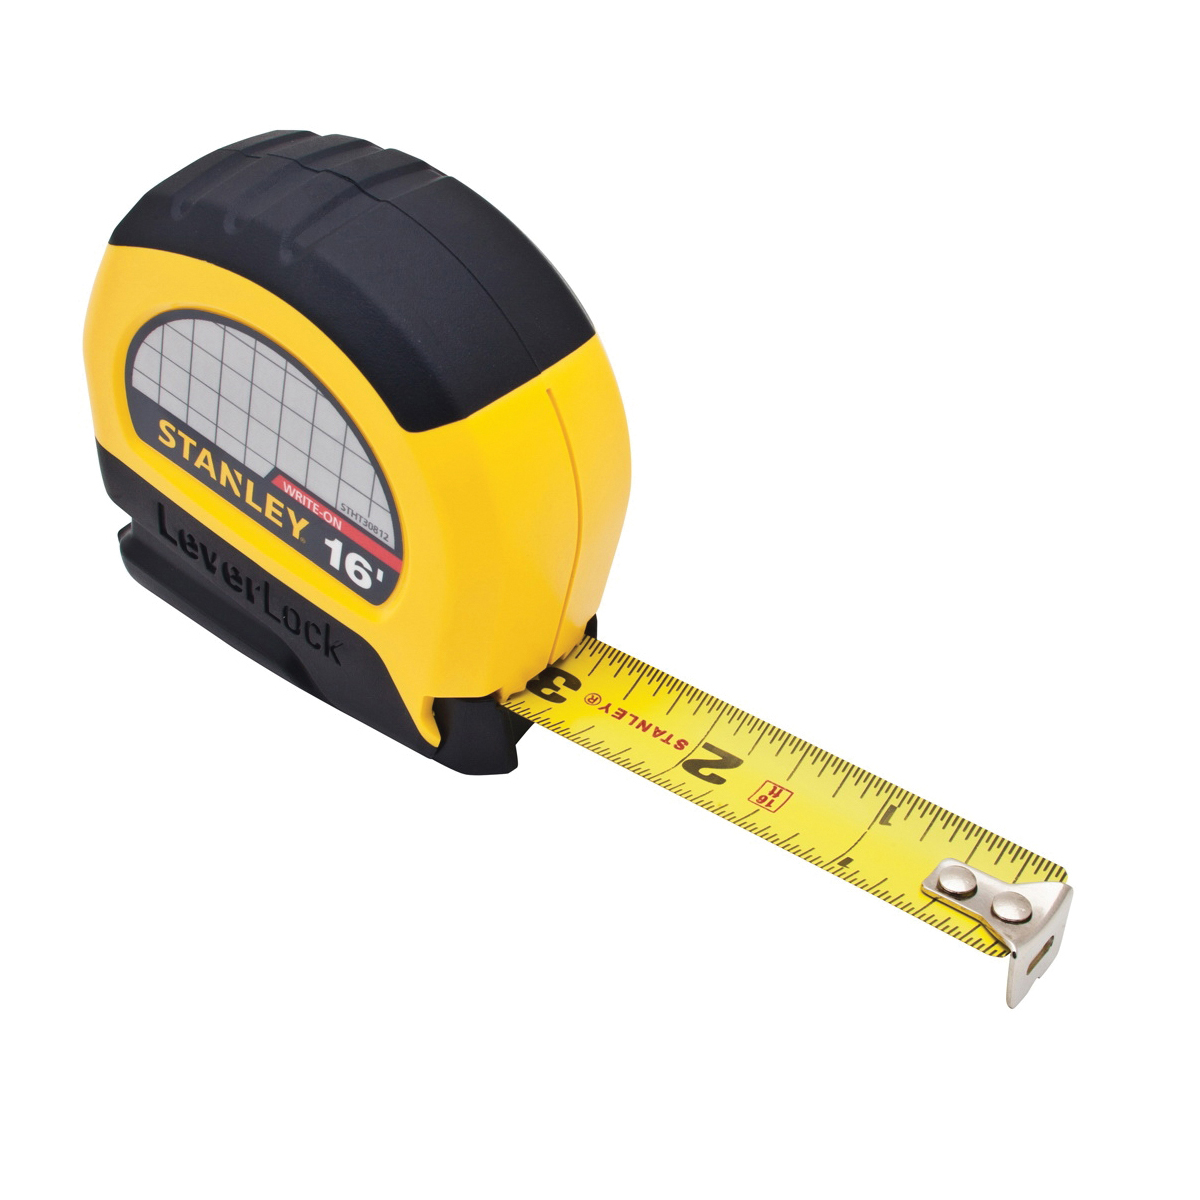 Stanley® LeverLock® 30-812 Tape Rule, 6 ft L x 3/4 in W Blade, Steel, Imperial